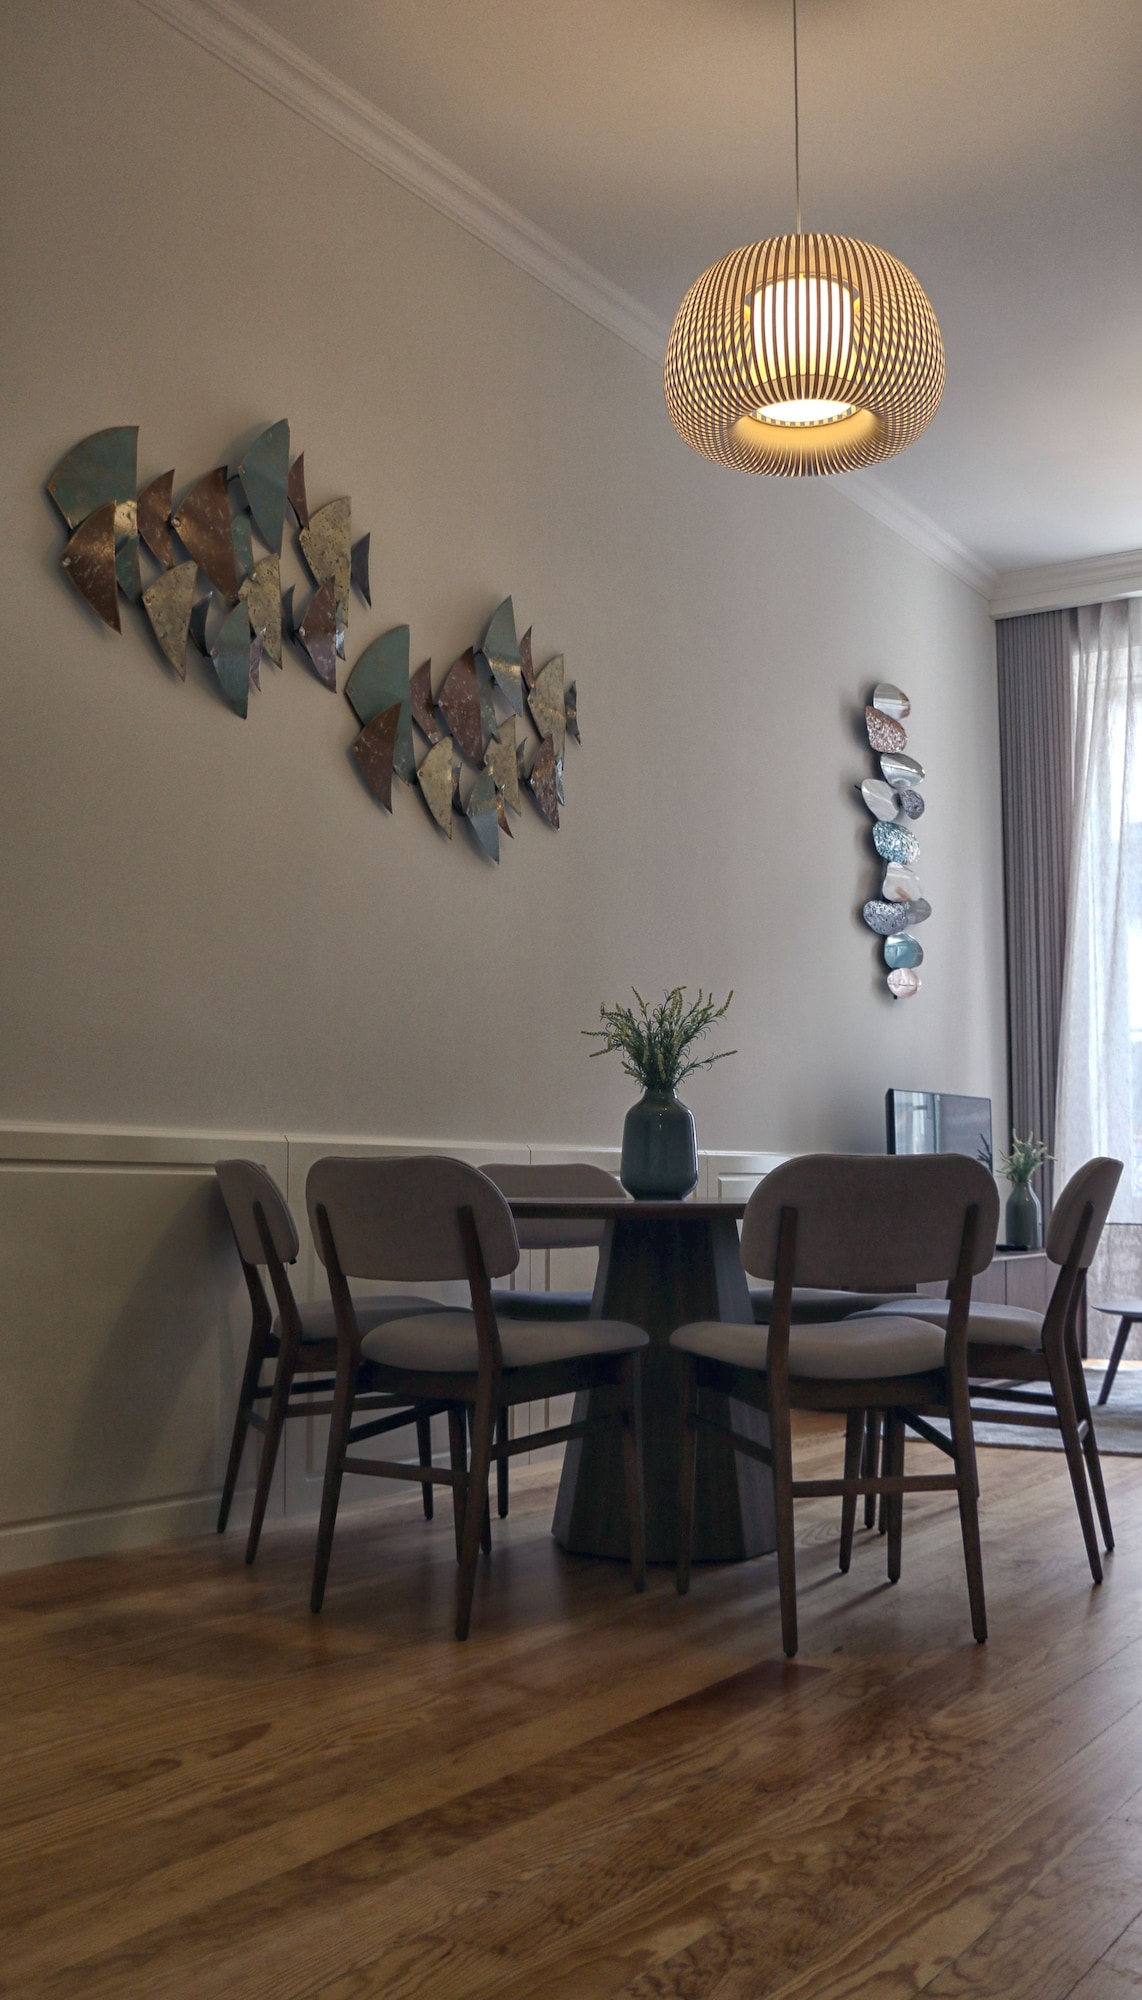 LIT Apartments 2 bedrooms at City center, Porto